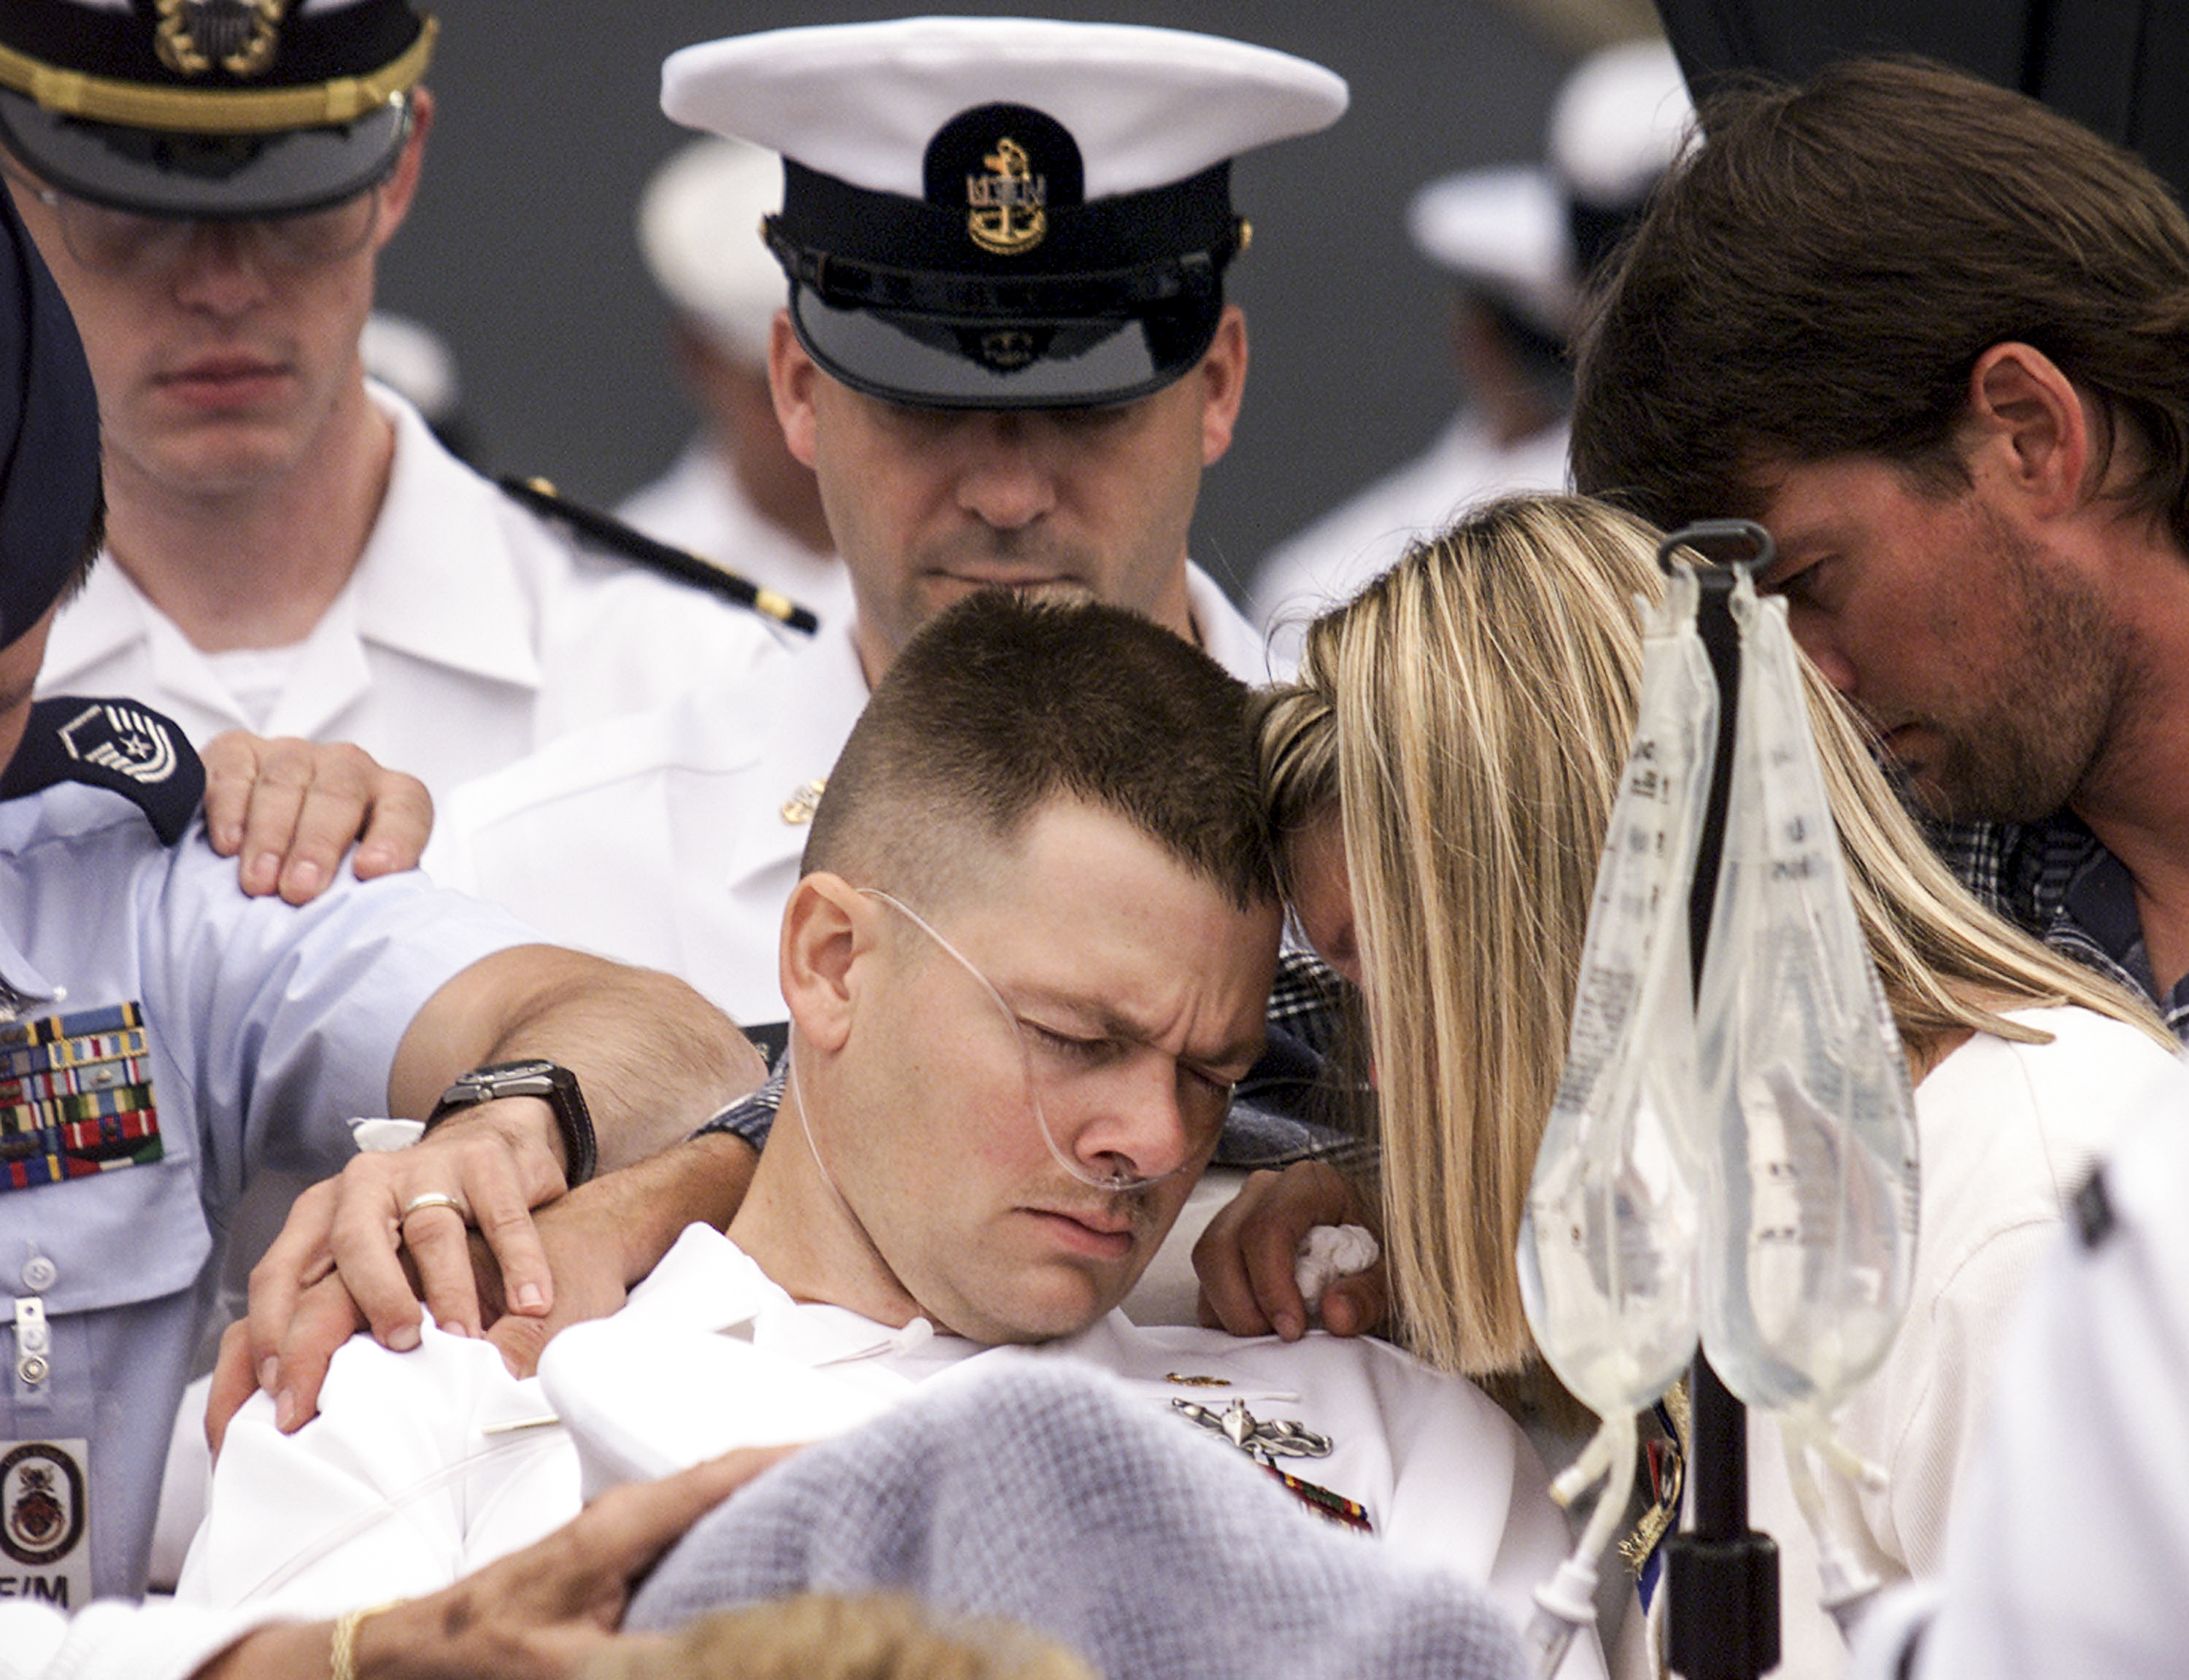 An injured sailor from the USS Cole is comforted by family members during a memorial service attended by President Bill Clinton, in Norfolk, VA, on October 18, 2000.